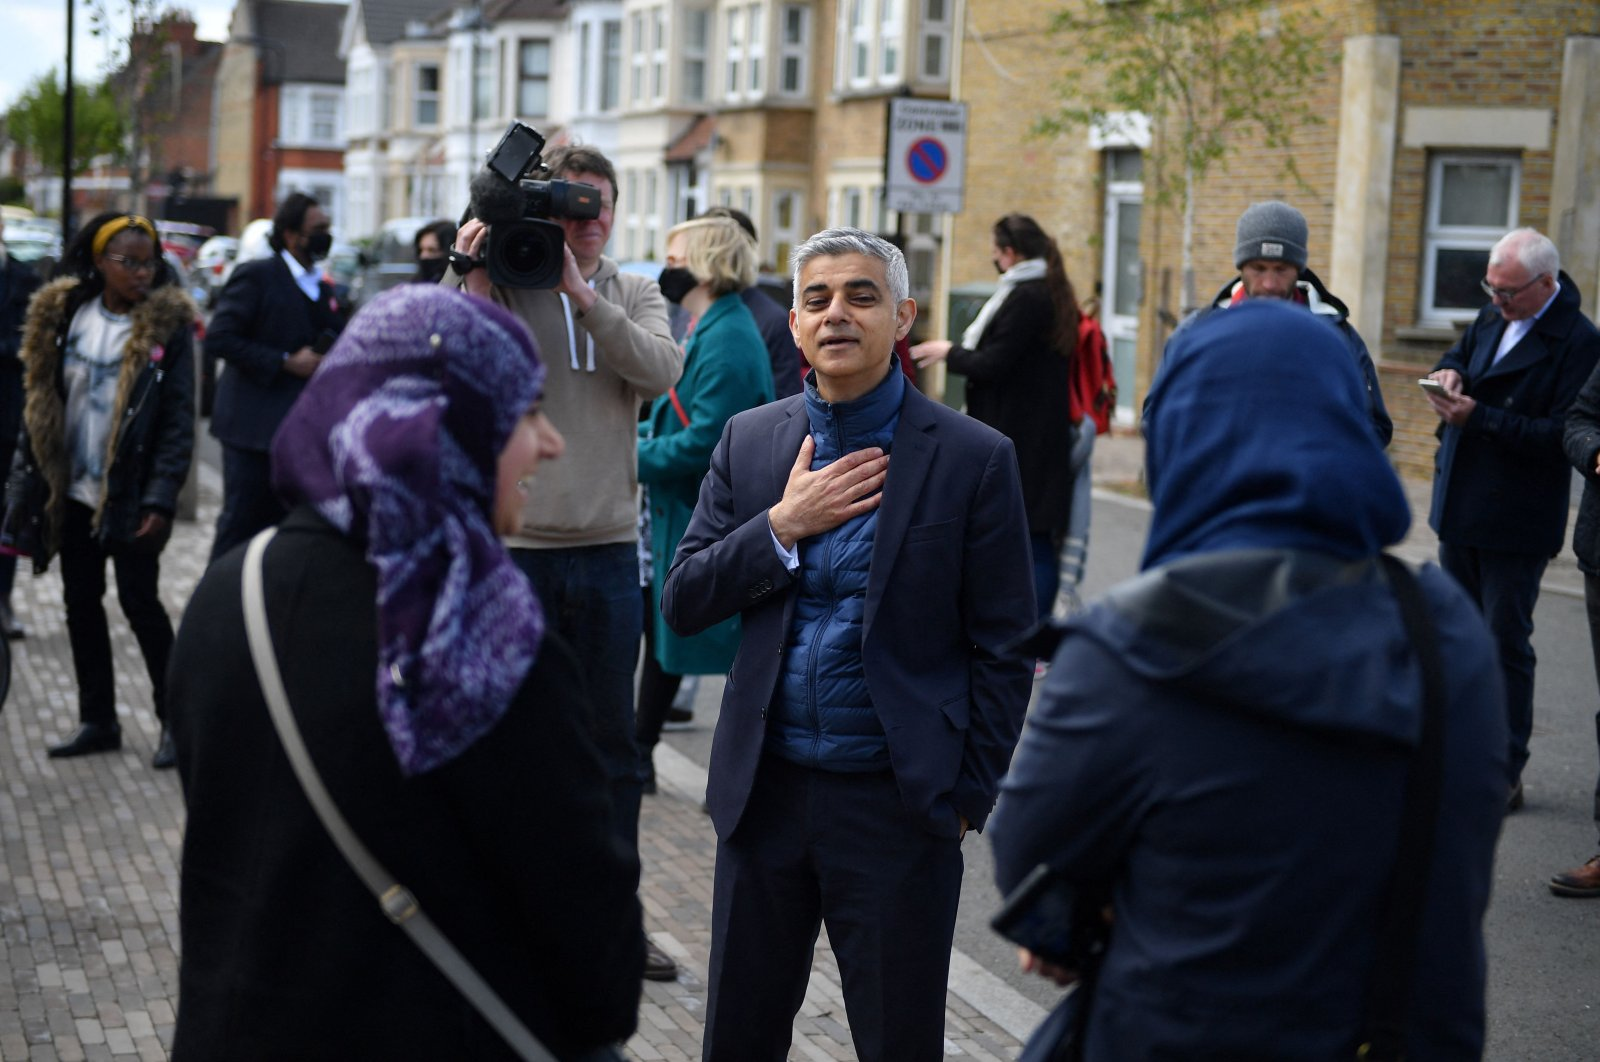 London Mayor Sadiq Khan (C) chats with locals as he campaigns ahead of the London mayoral election, in Waltham Forest, northeast London, U.K., May 5, 2021. (AFP Photo)